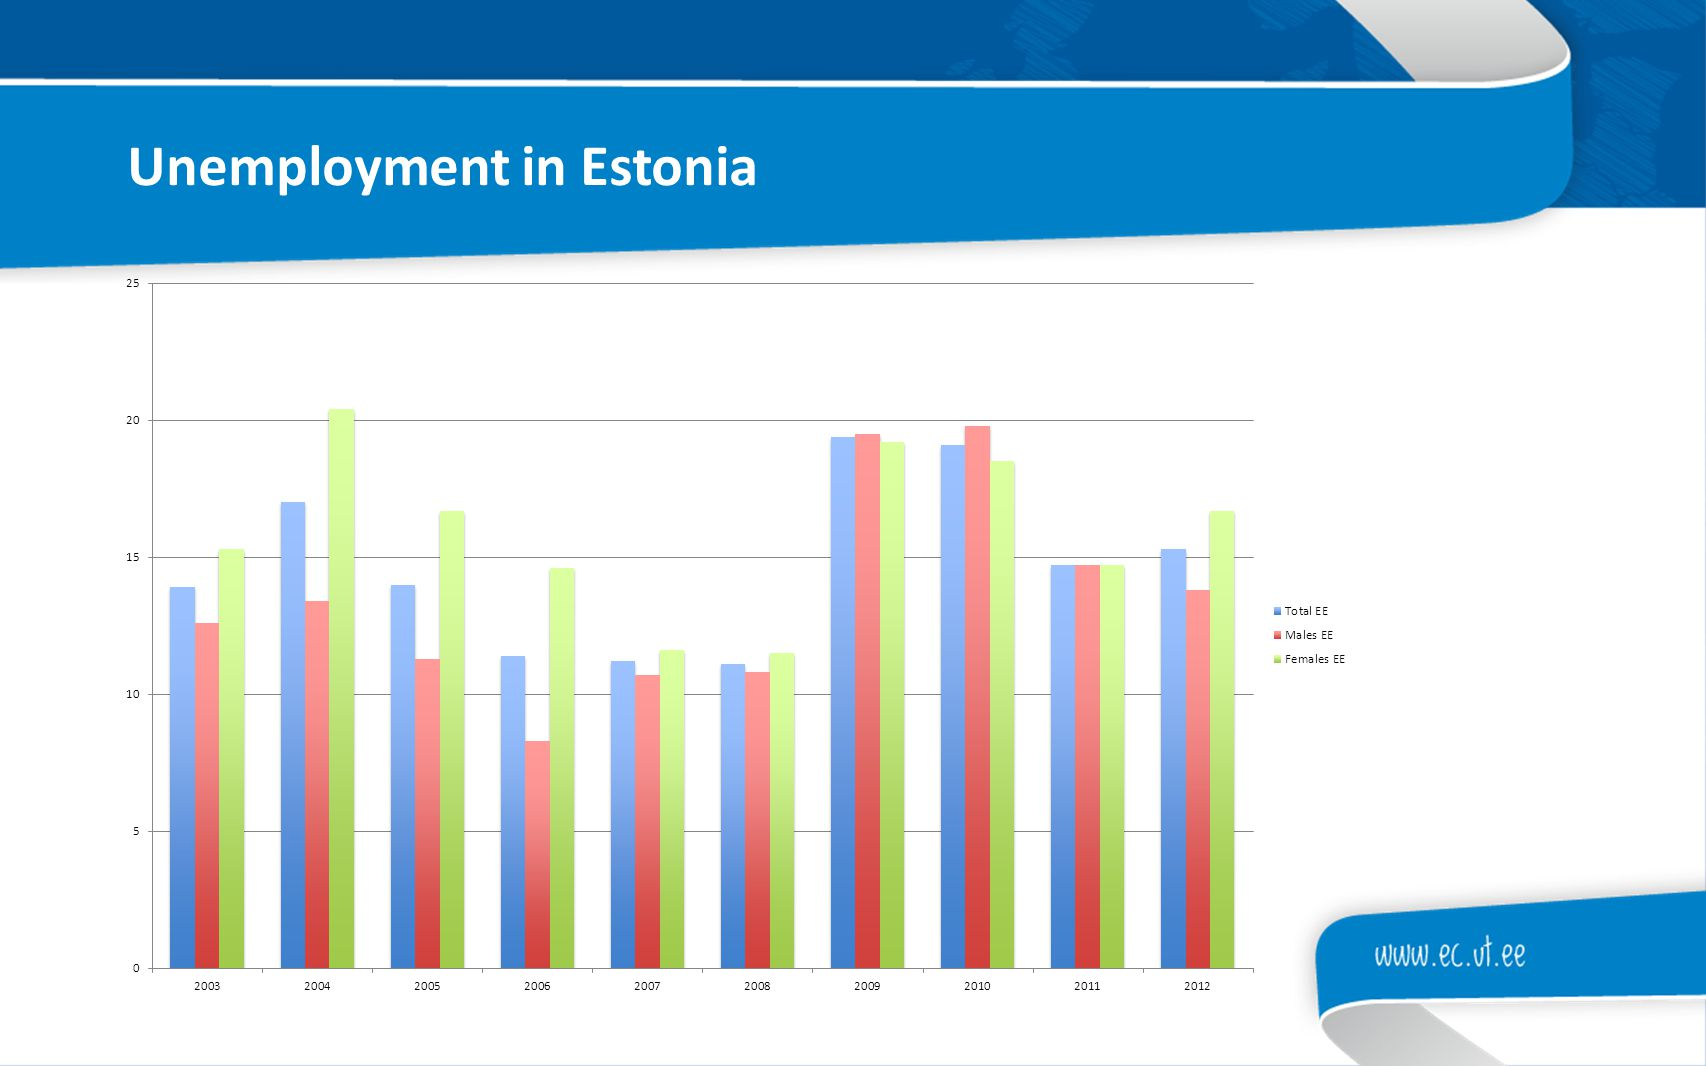 Unemployment in Estonia